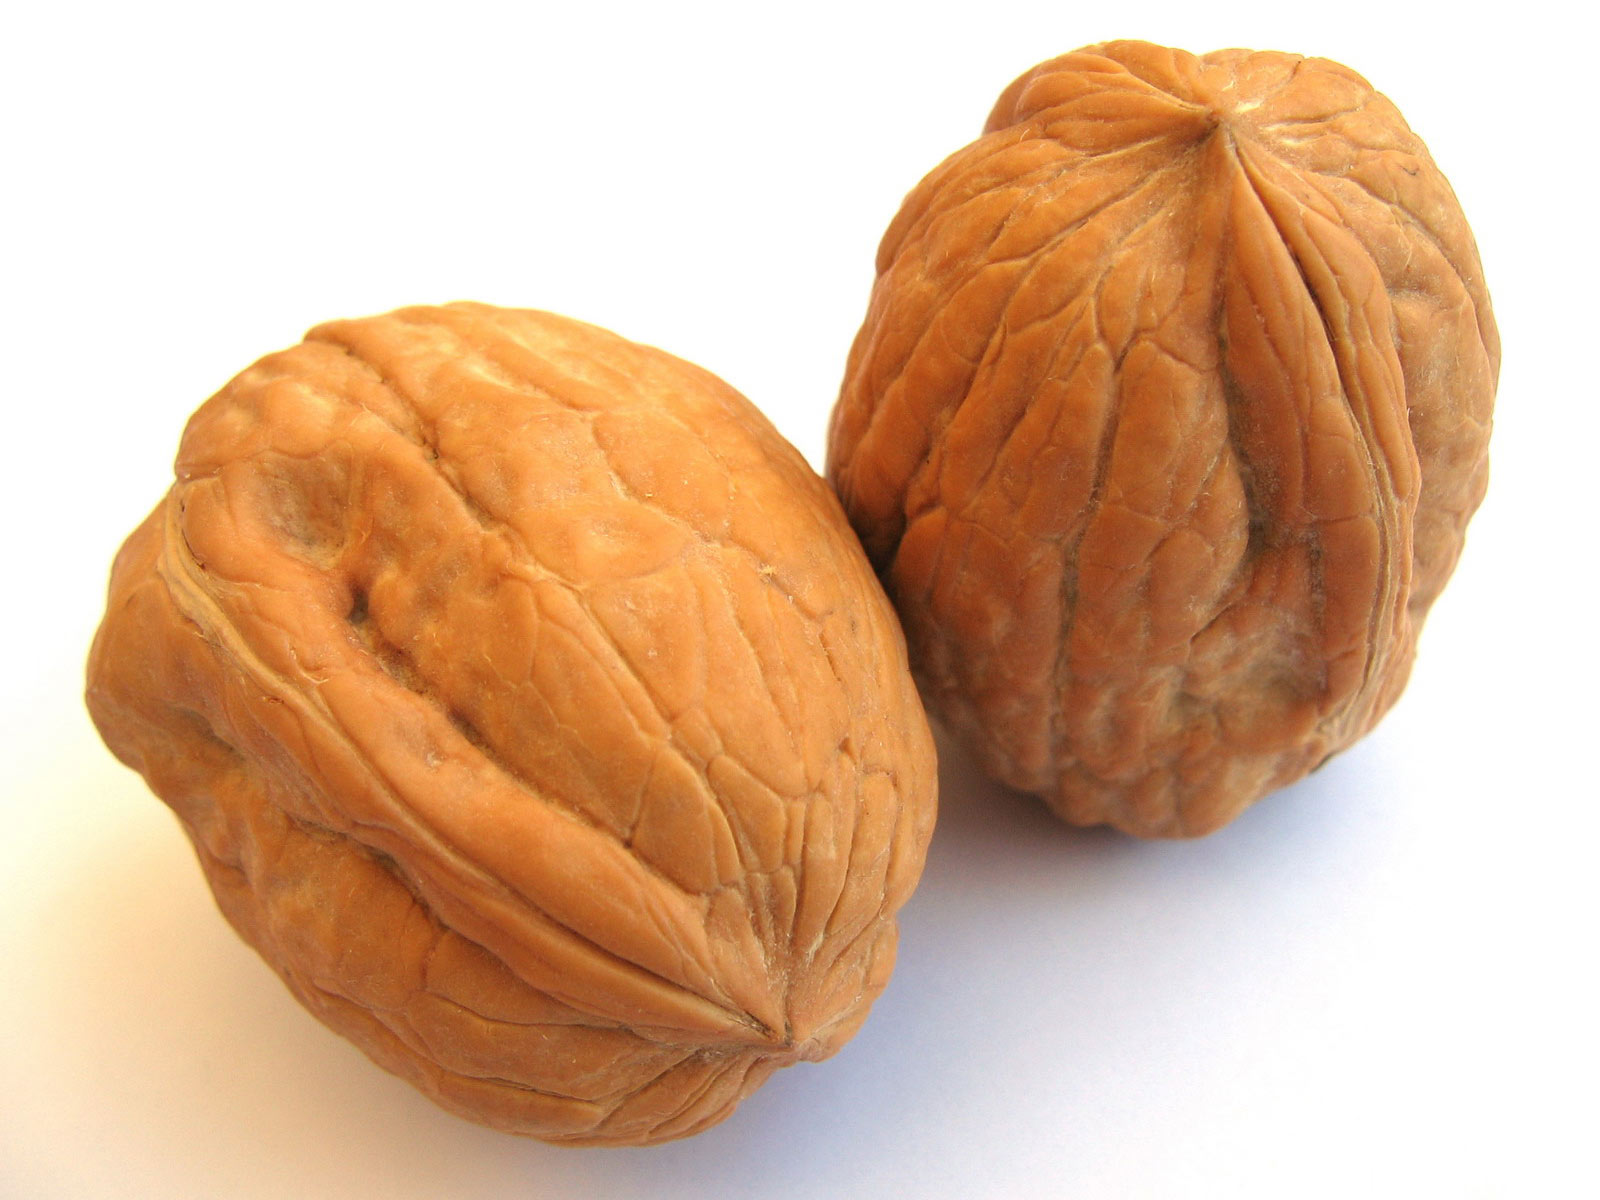 Walnut High Quality Background on Wallpapers Vista